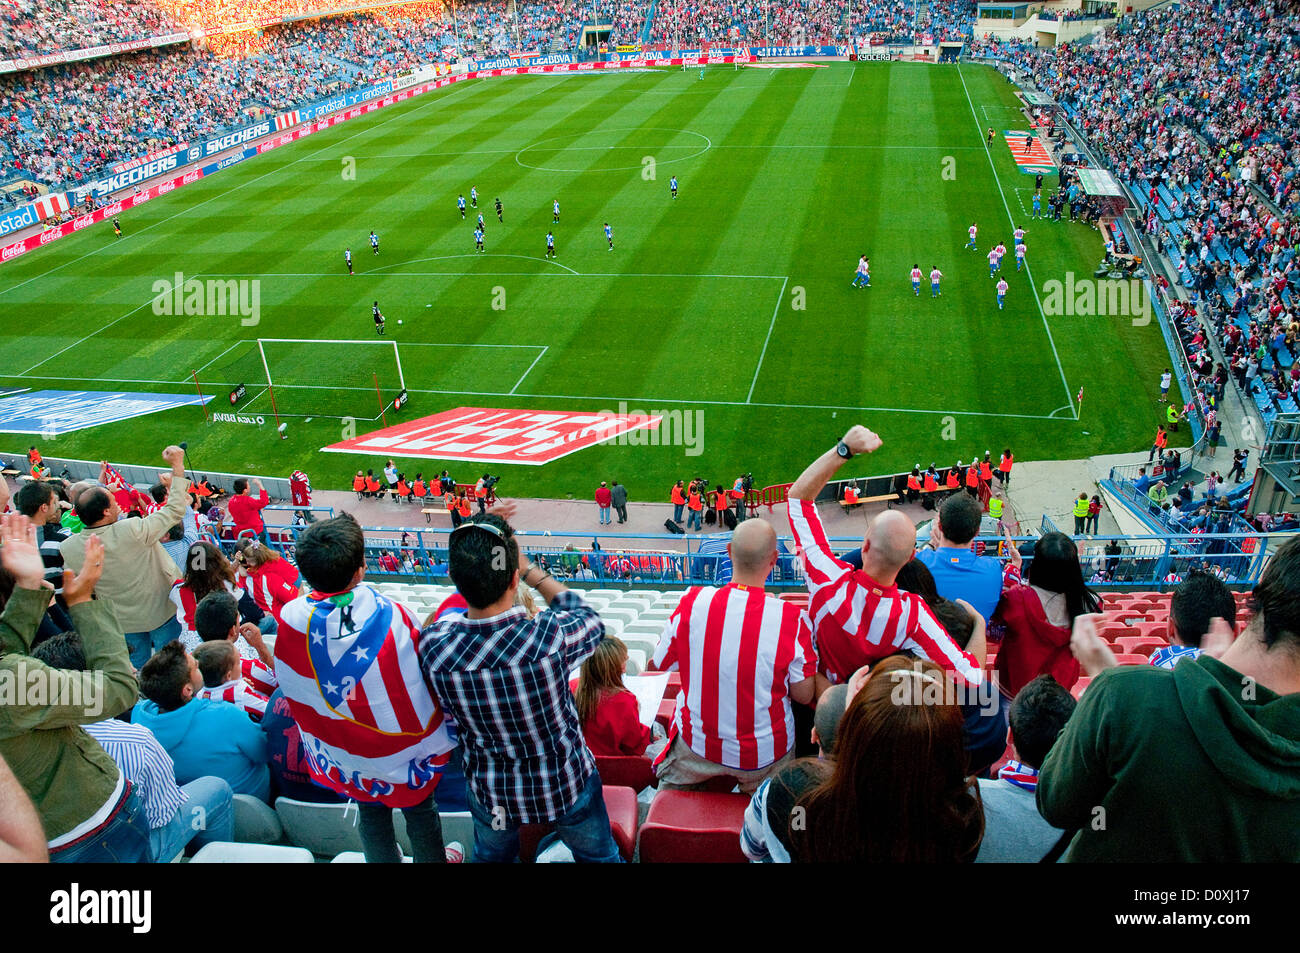 People celebrating a goal in the Atletico de Madrid-Hercules football match. Vicente Calderon stadium, Madrid, Spain. Stock Photo